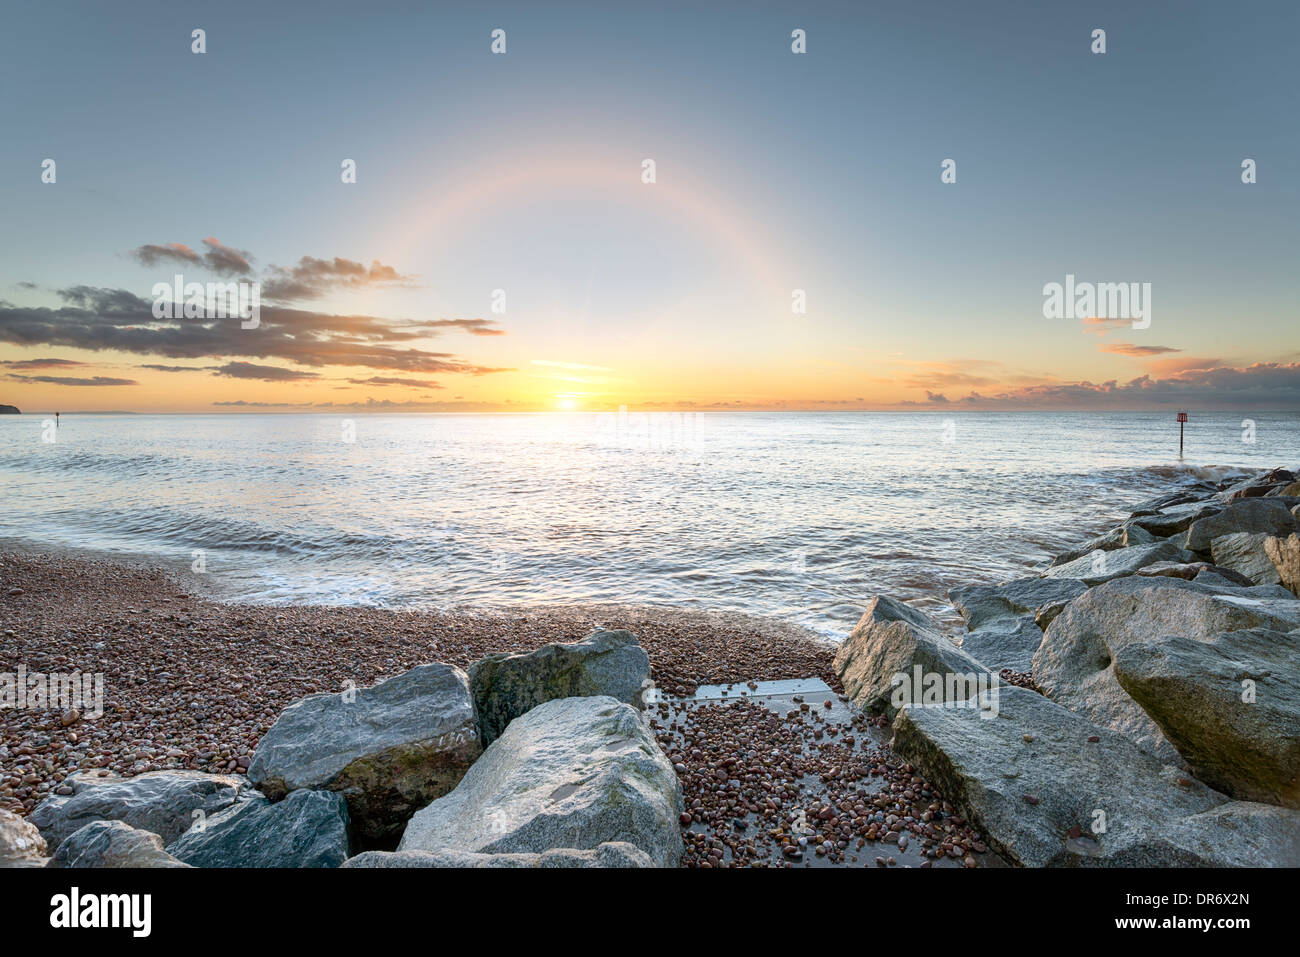 The beach and shoreline at Sidmouth on the south coast of Devon - Stock Image